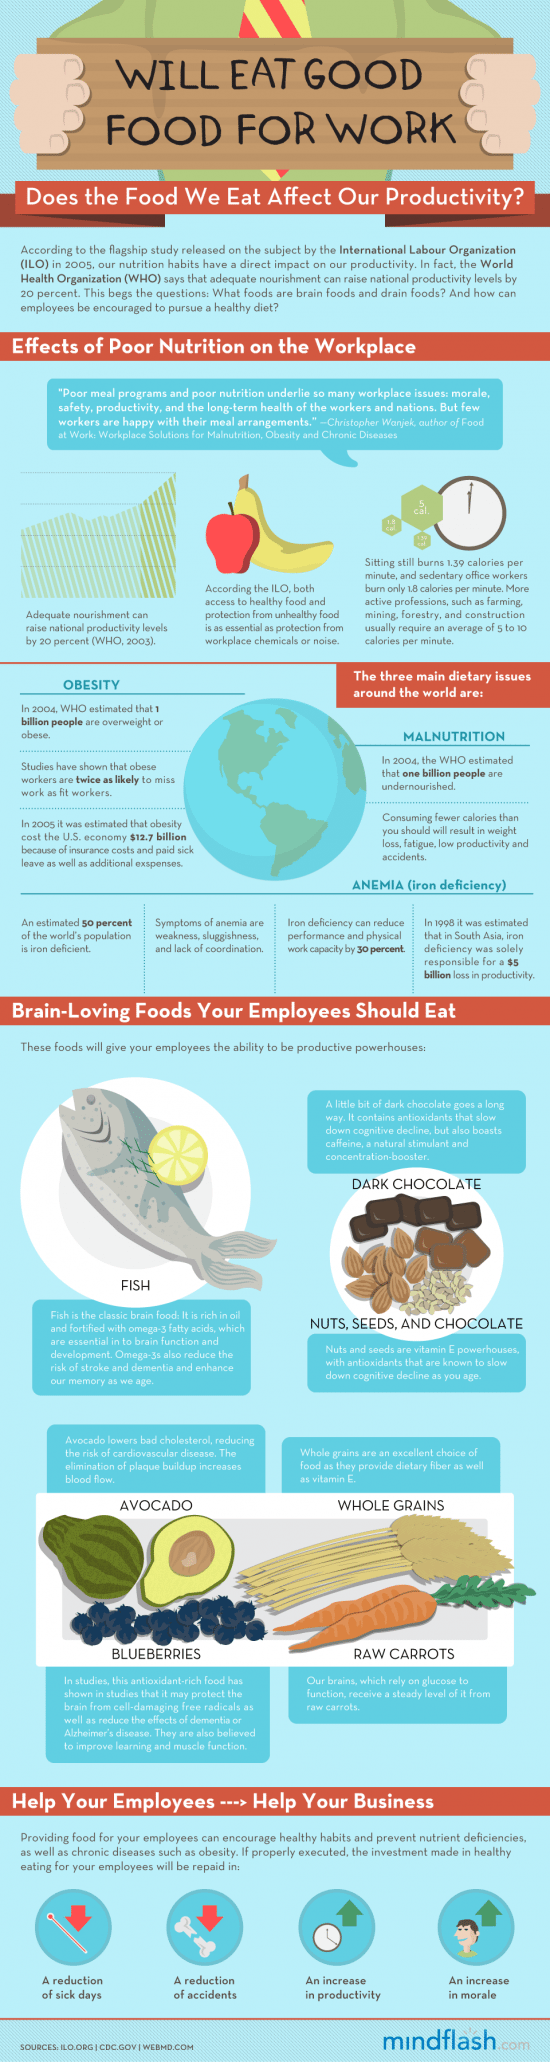 pic Does the food we eat affect our productivity?